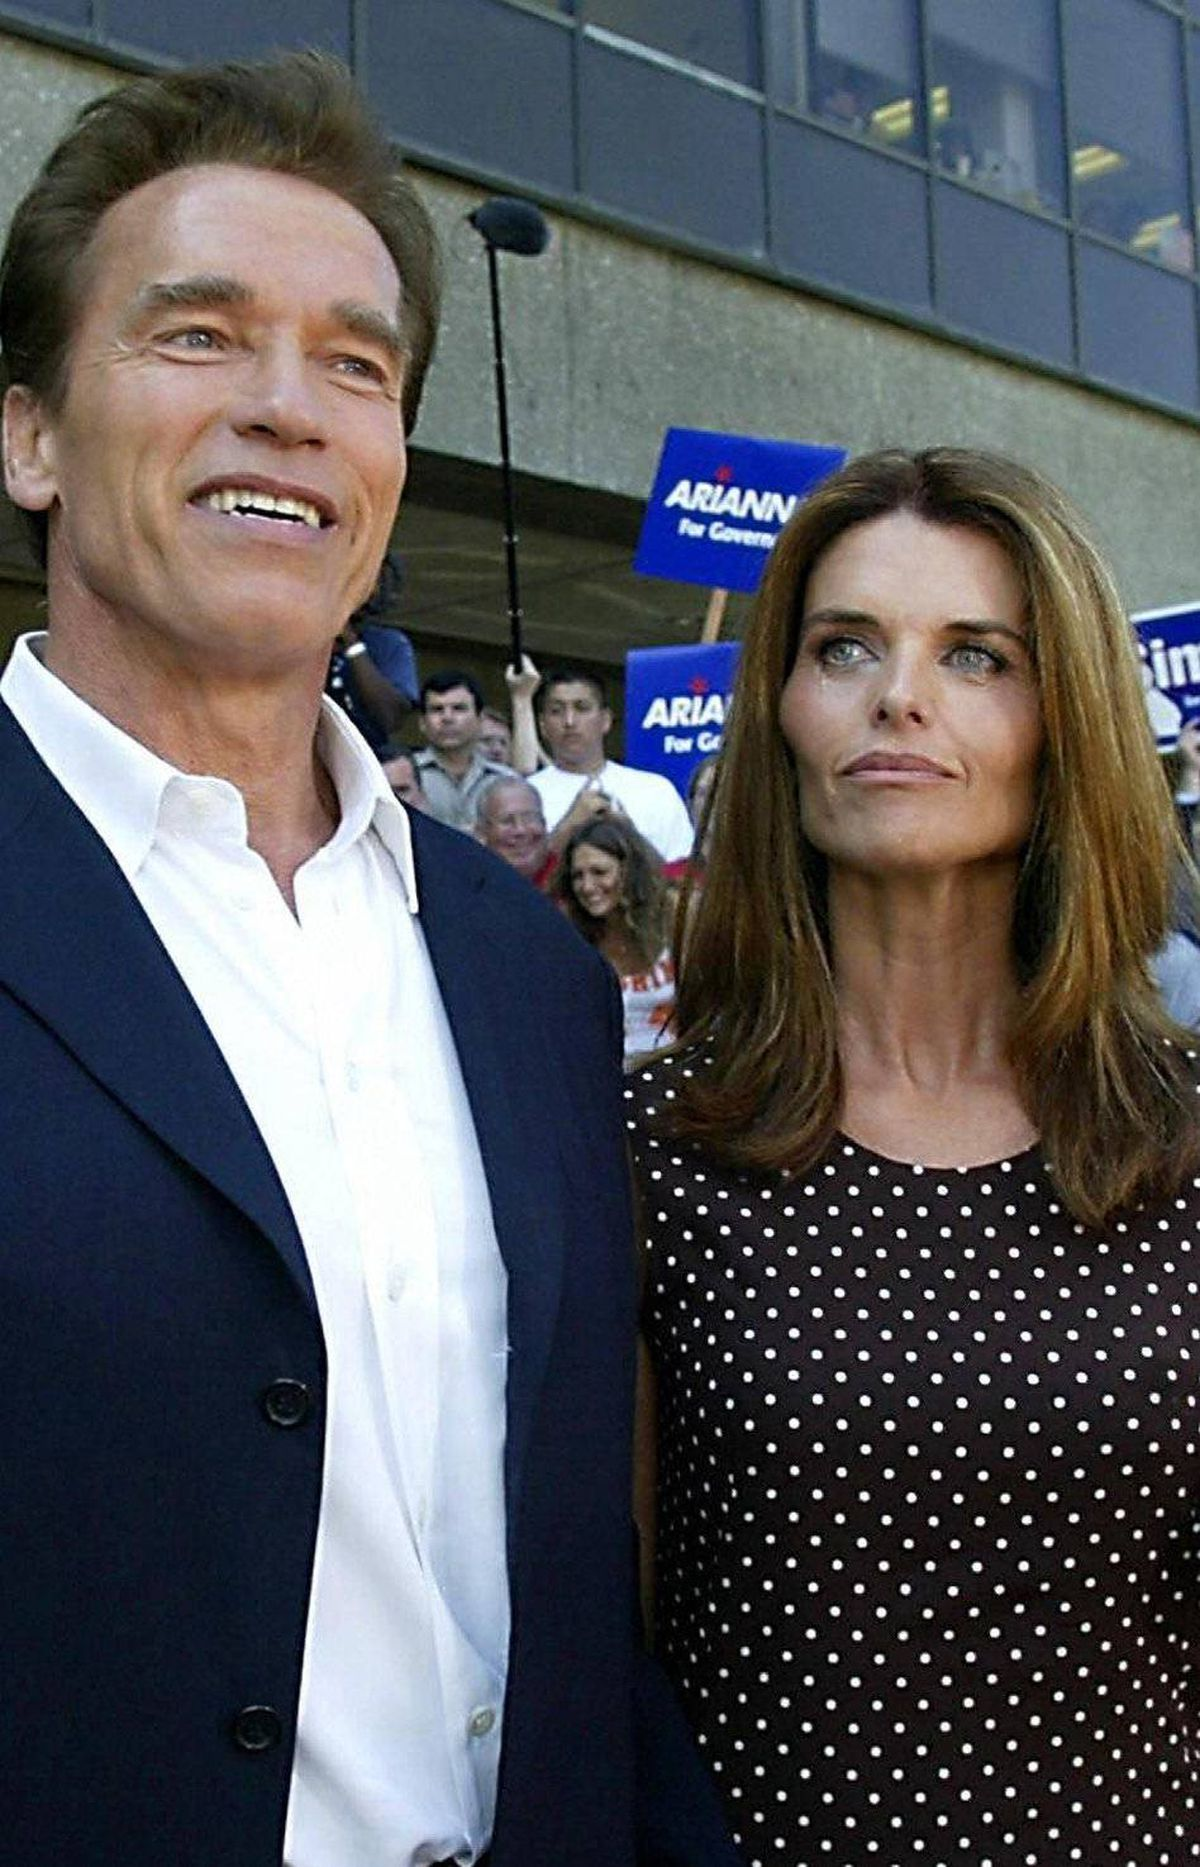 Maria Shriver vs. Arnold Schwarzenegger Their marriage had long been rumoured to be on the rocks, but the scandal that finally terminated it after 25 years was a bombshell: Schwarzenegger had fathered a son with a member of their household staff. Word of the 13-year-old extramarital child leaked out days after the couple announced their separation. Verdict: Schwarzenegger. Shriver gets the sympathy vote now, but Arnold will be back: He's already shot a film, and there's reportedly an autobiography in the works.